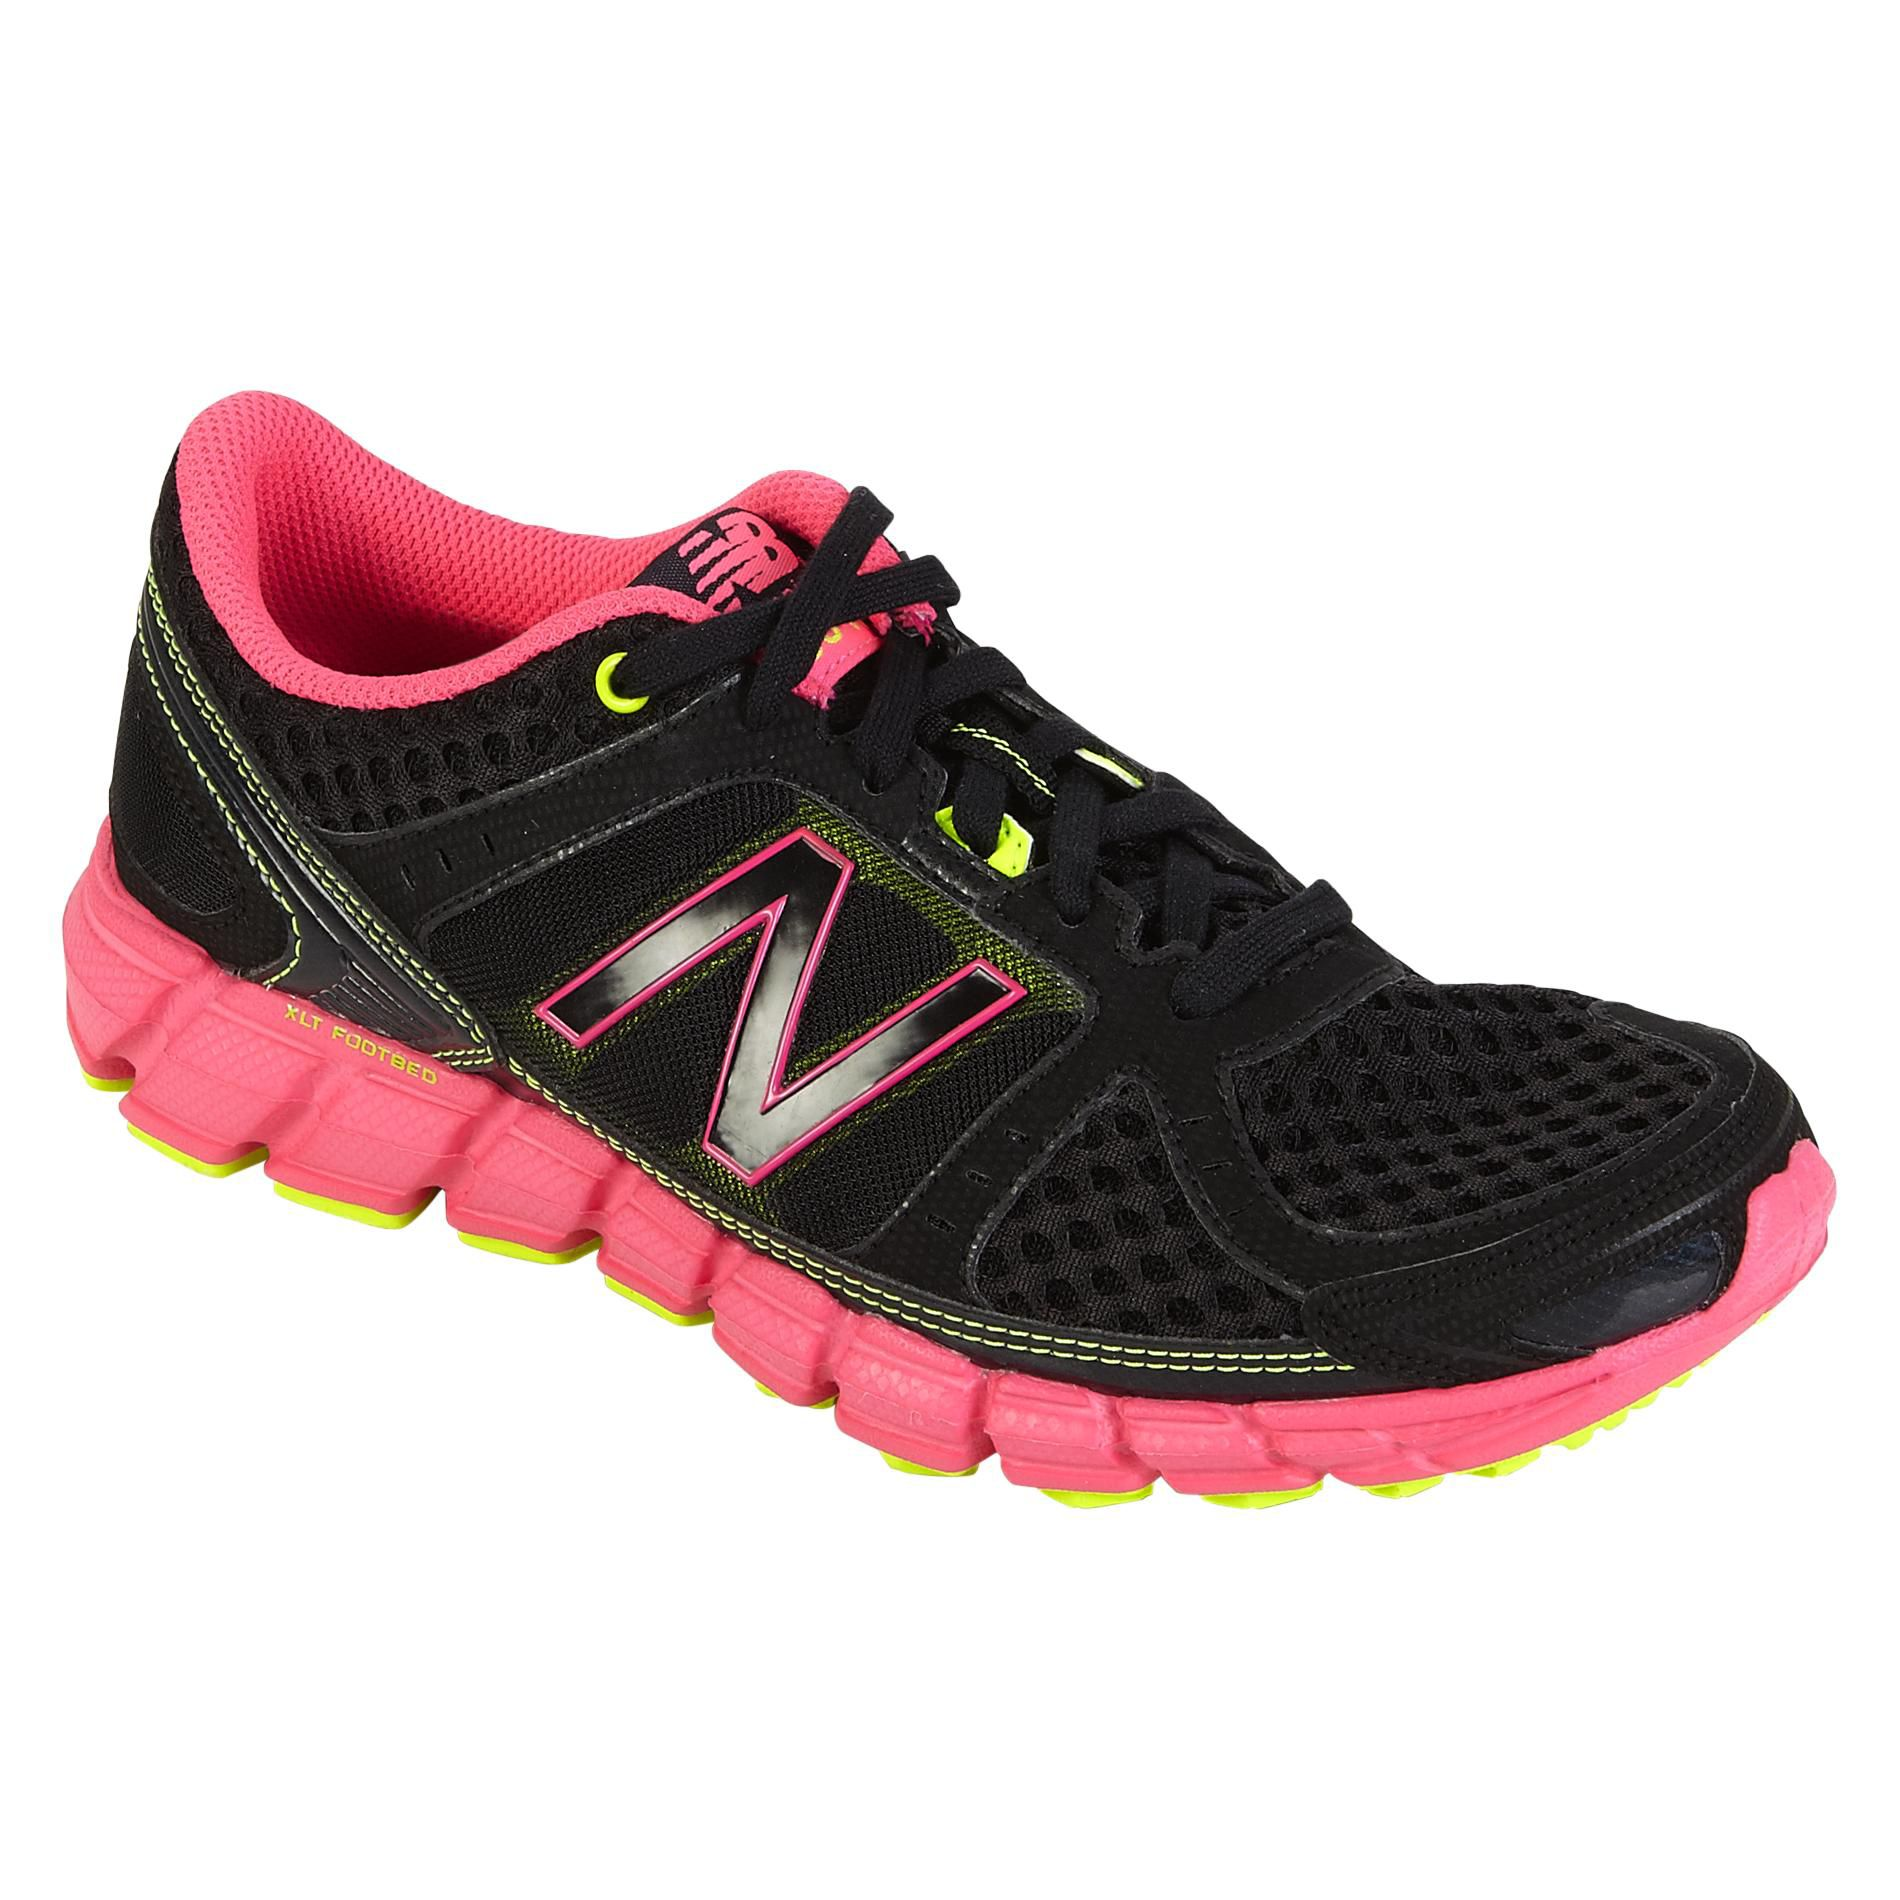 Women's 750 Running Athletic Shoe - Black/Pink